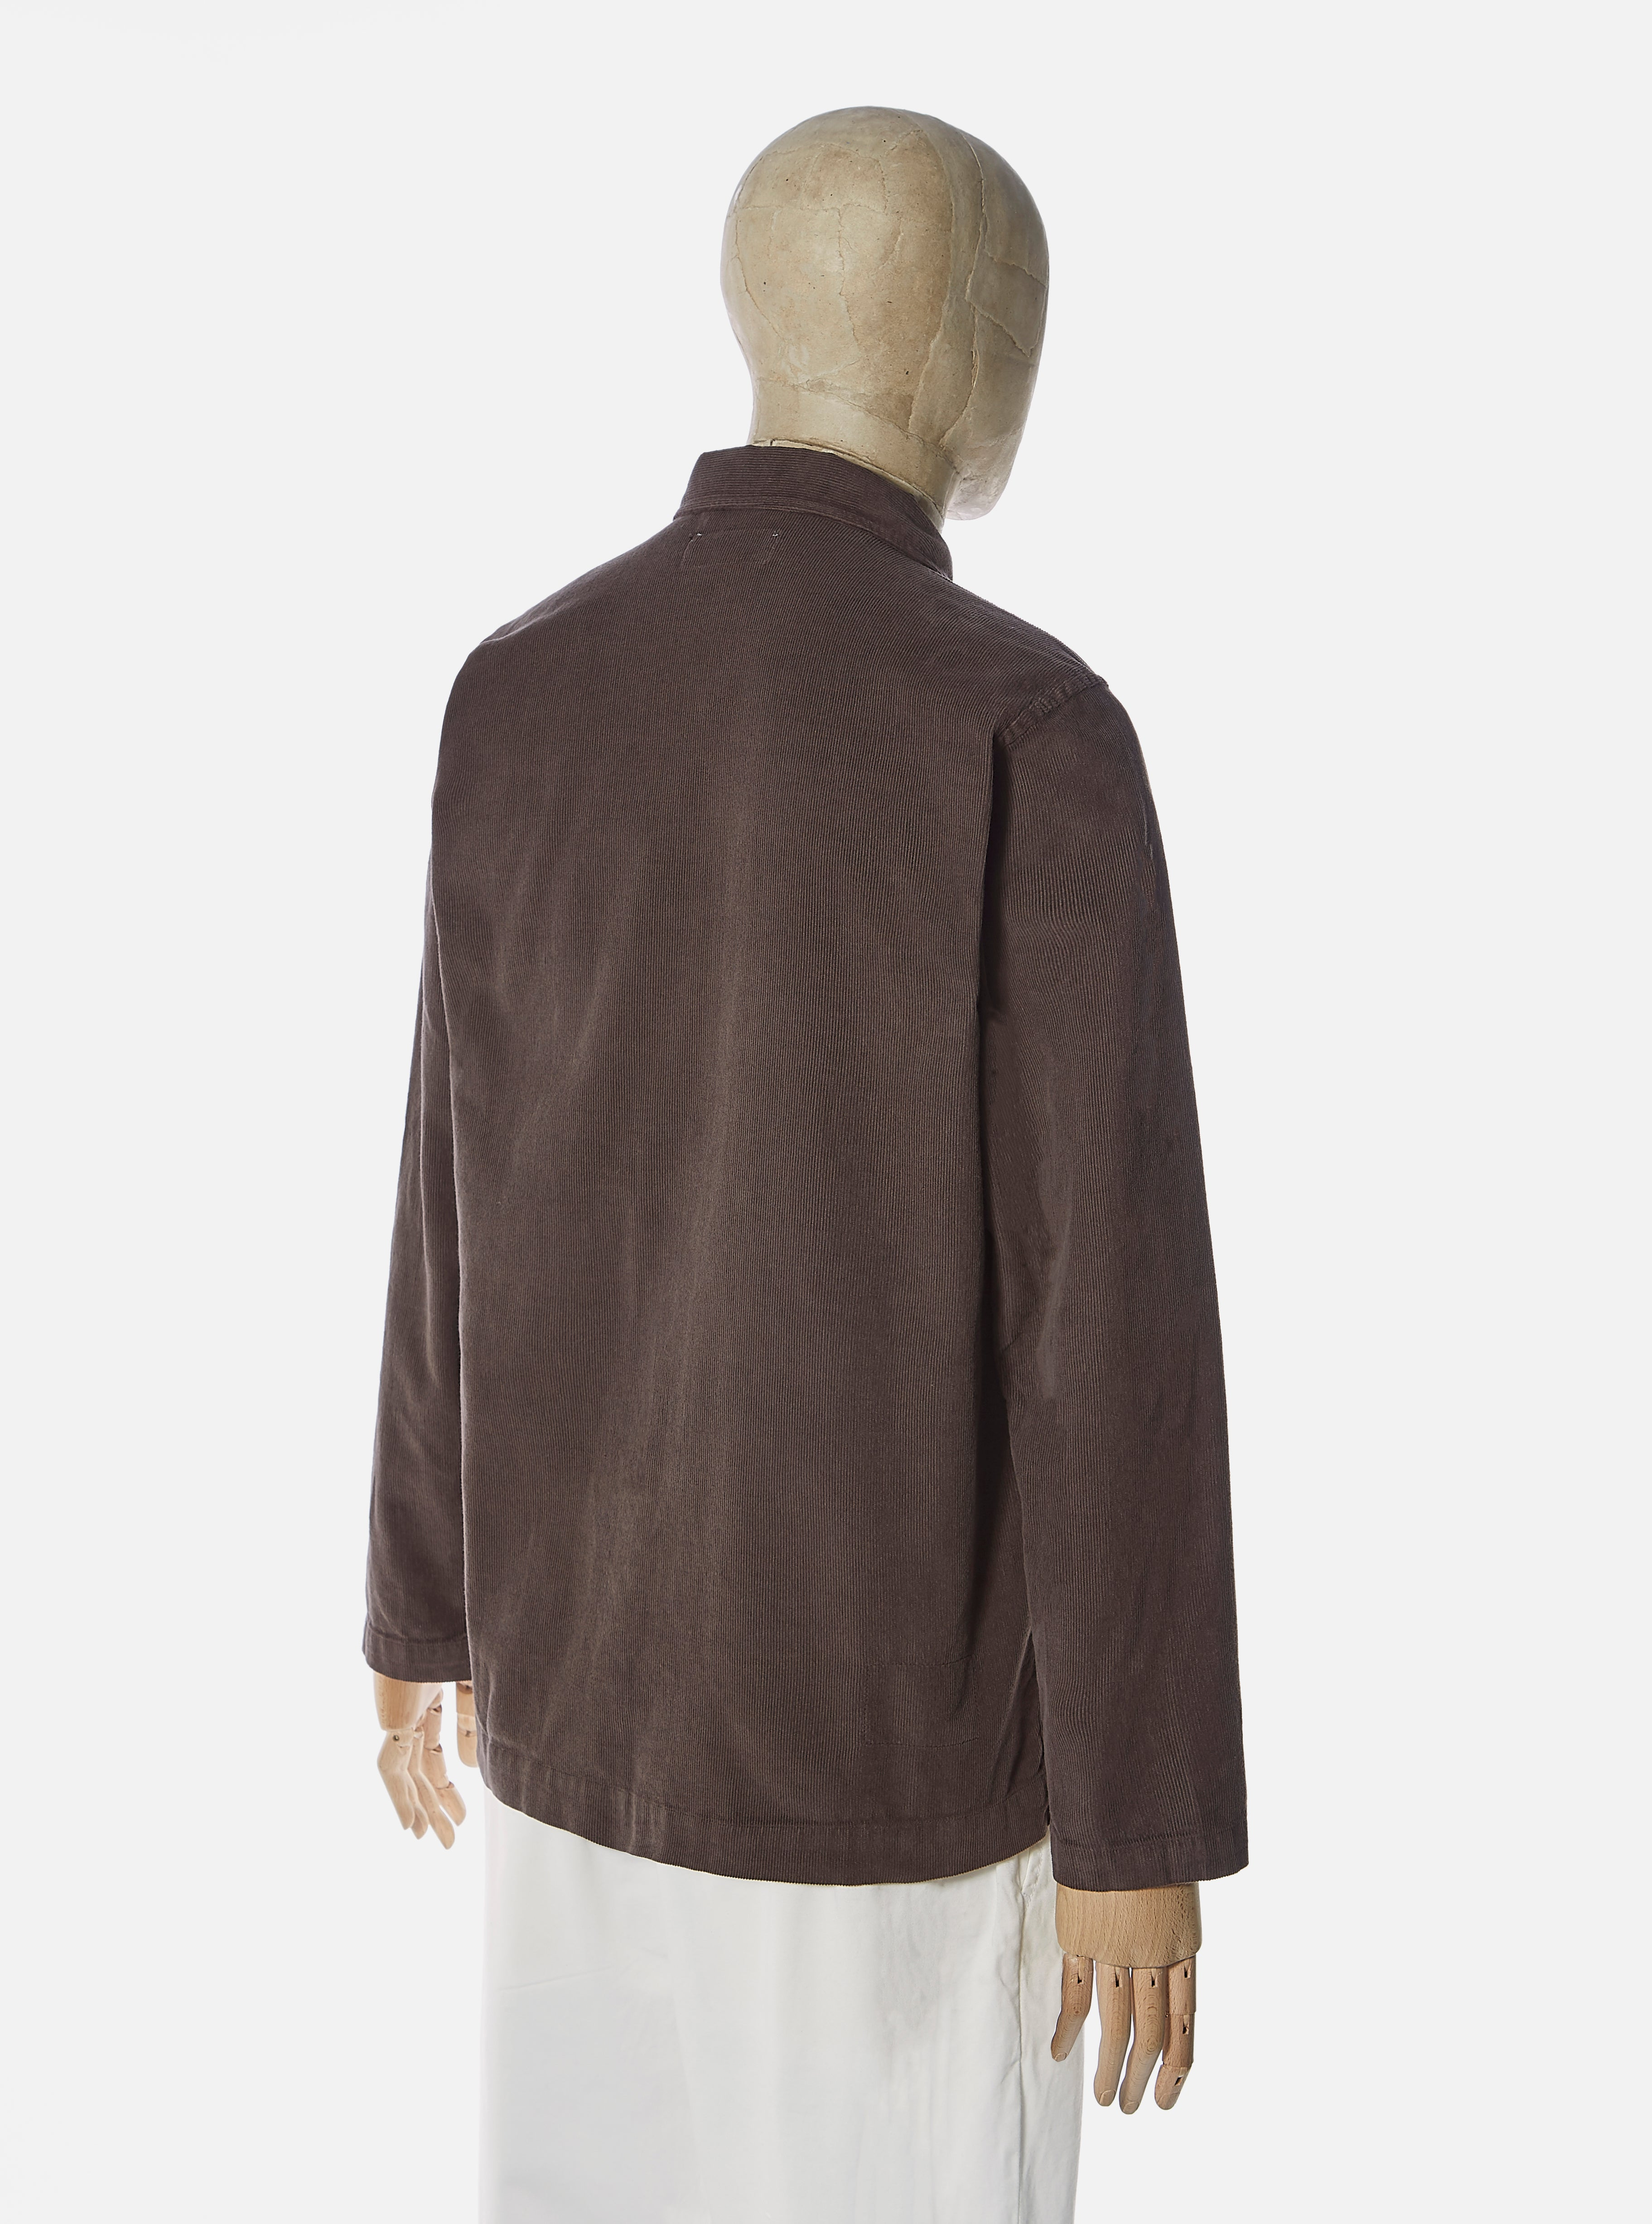 Universal Works Bakers Overshirt in Chocolate Fine Cord